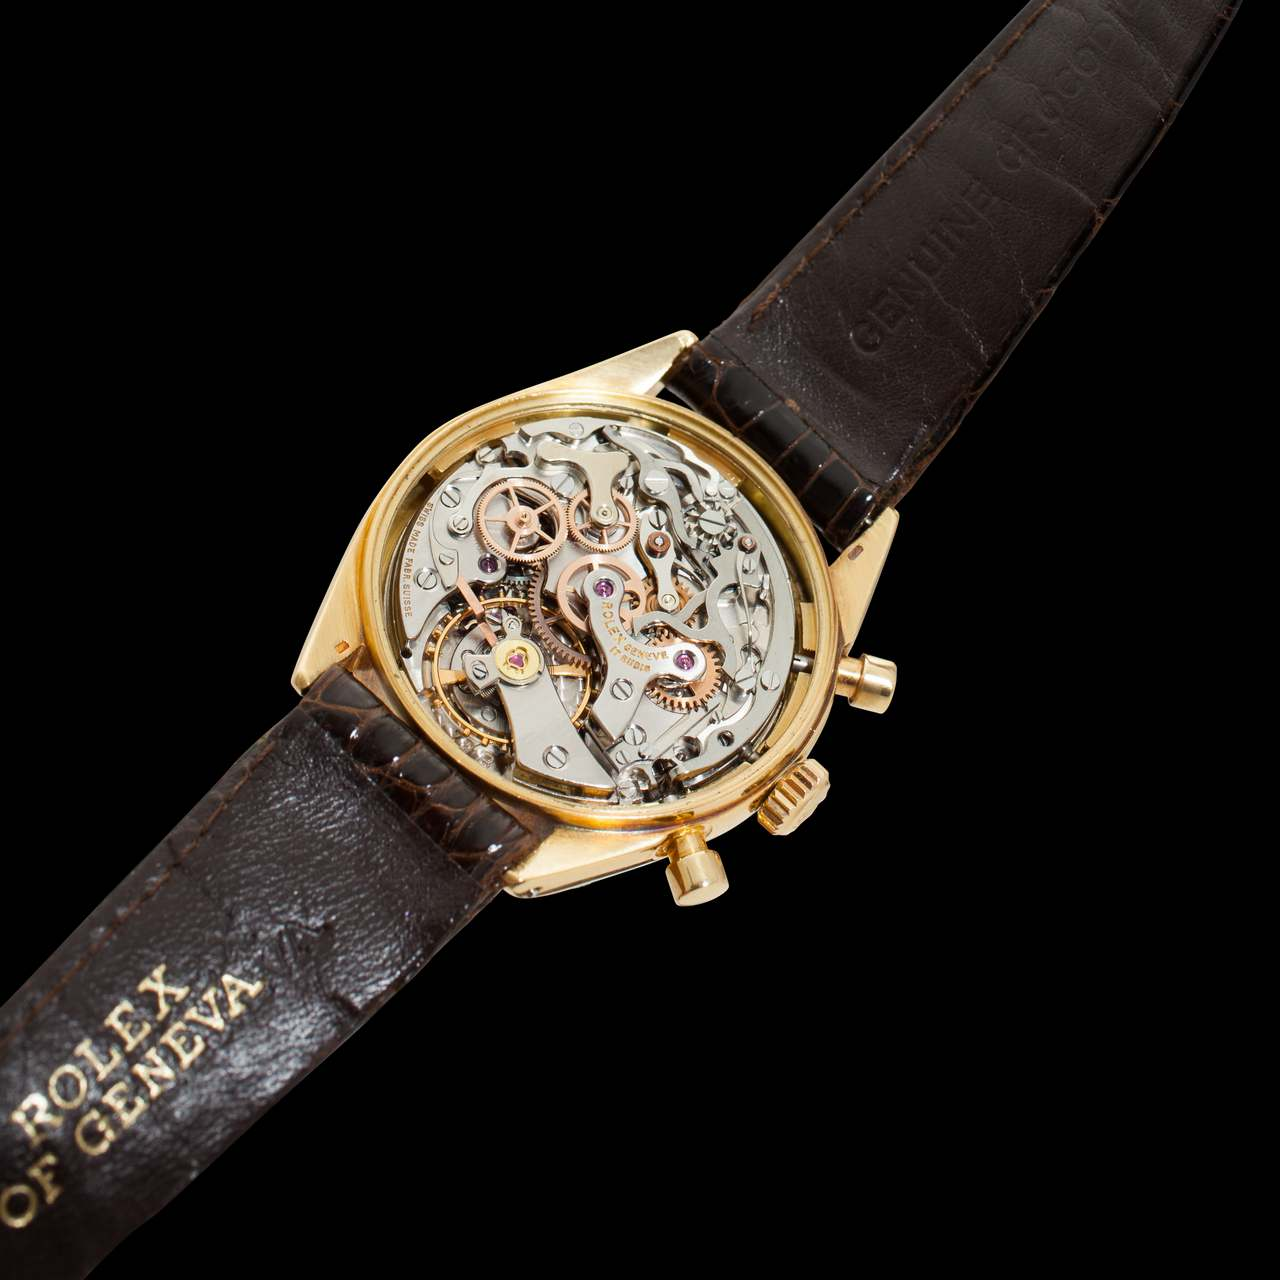 Rolex_Pre_Daytona_Ref_ 6238_Case No.996925_prezzo_price_source_bonhams3